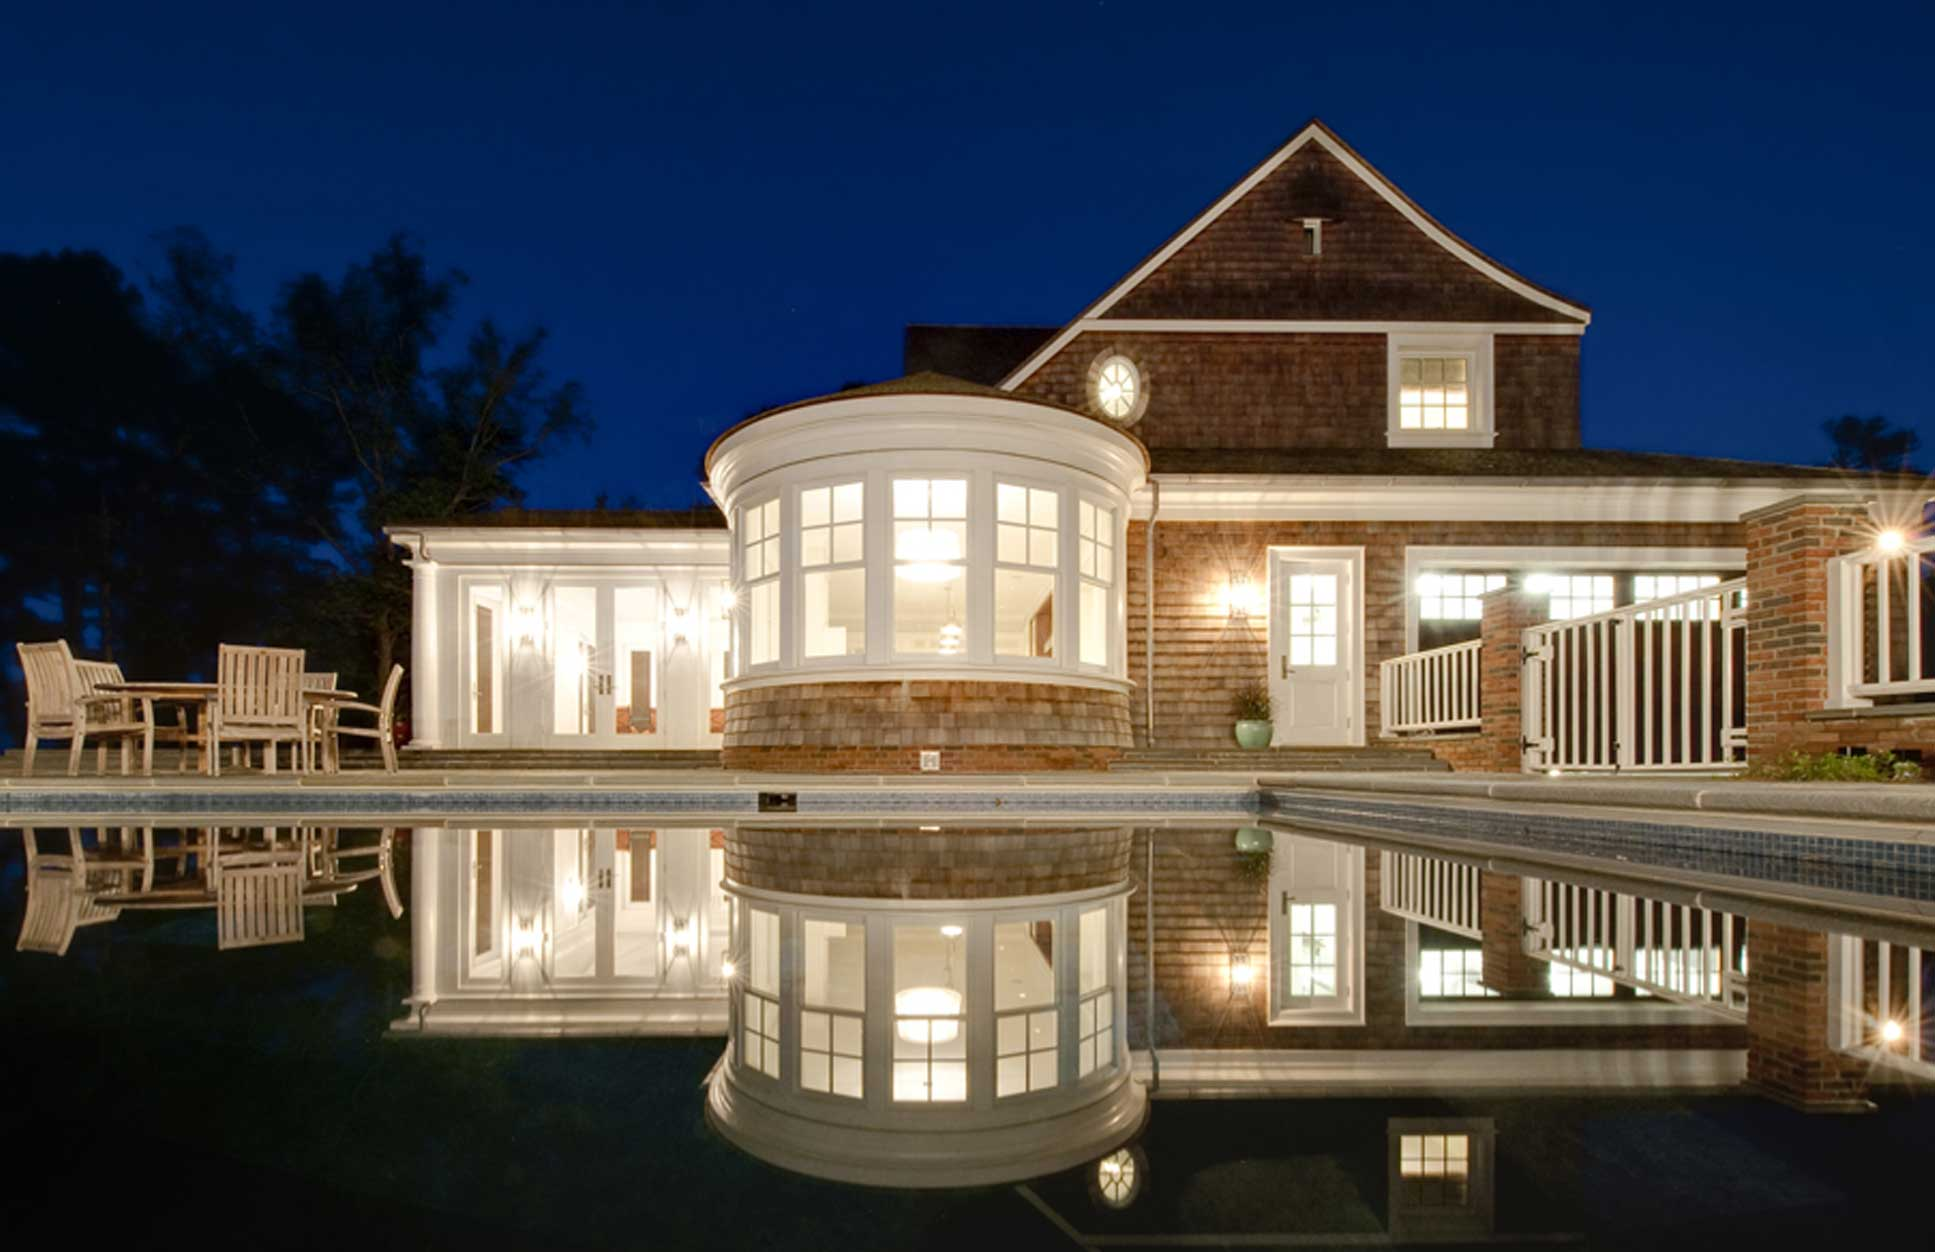 A backyard at night with lights reflecting on the pool in Little Neck built by Covington Contracting luxury custom homebuilder in Hampton Roads Virginia